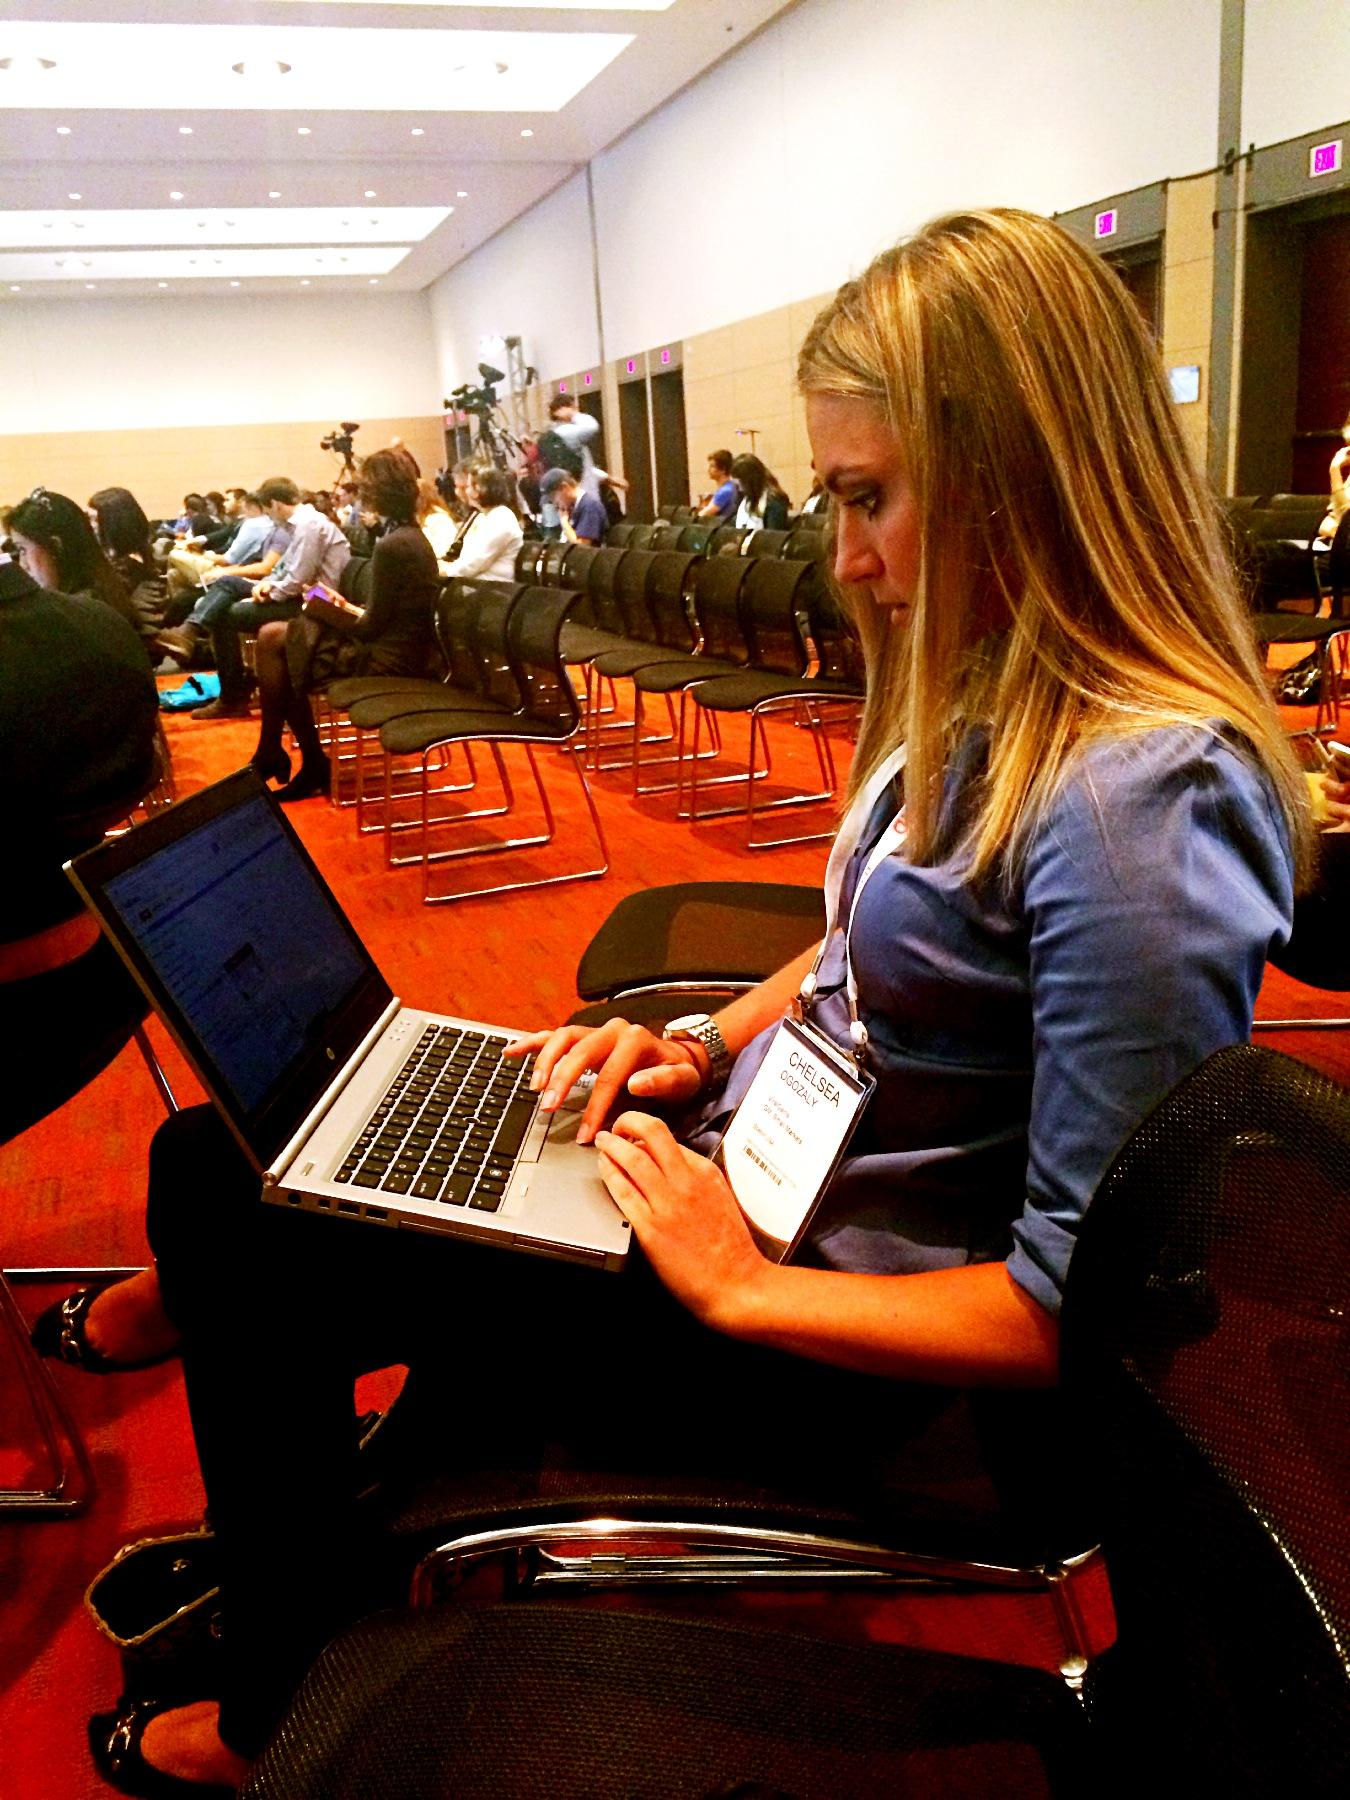 ViralGains' Chelsea Ogozaly, GM of Small Markets, hard at work during #INBOUND14! http://t.co/TDMRZ8SIo1